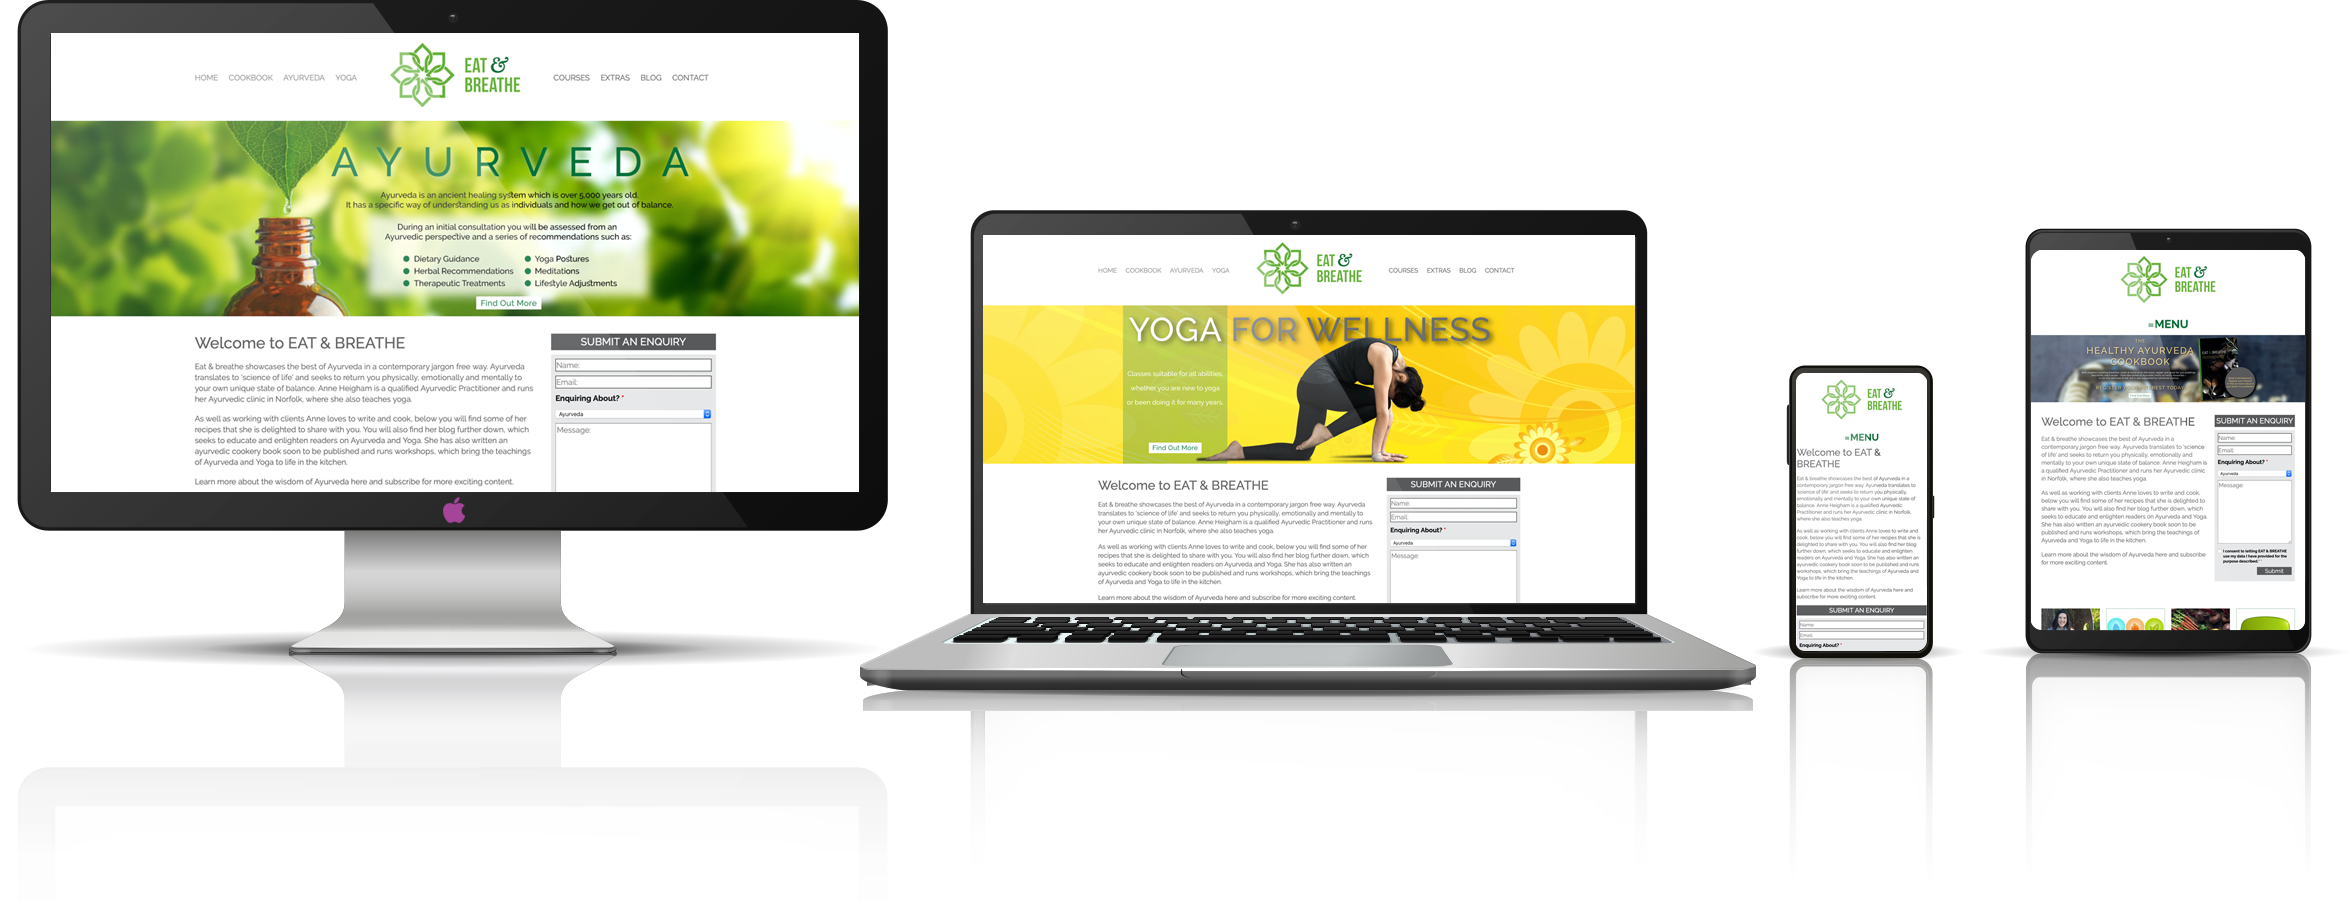 The Eat & Breathe fully responsive mock-up images showing desktop, laptop, tablet, and mobile phone devices.